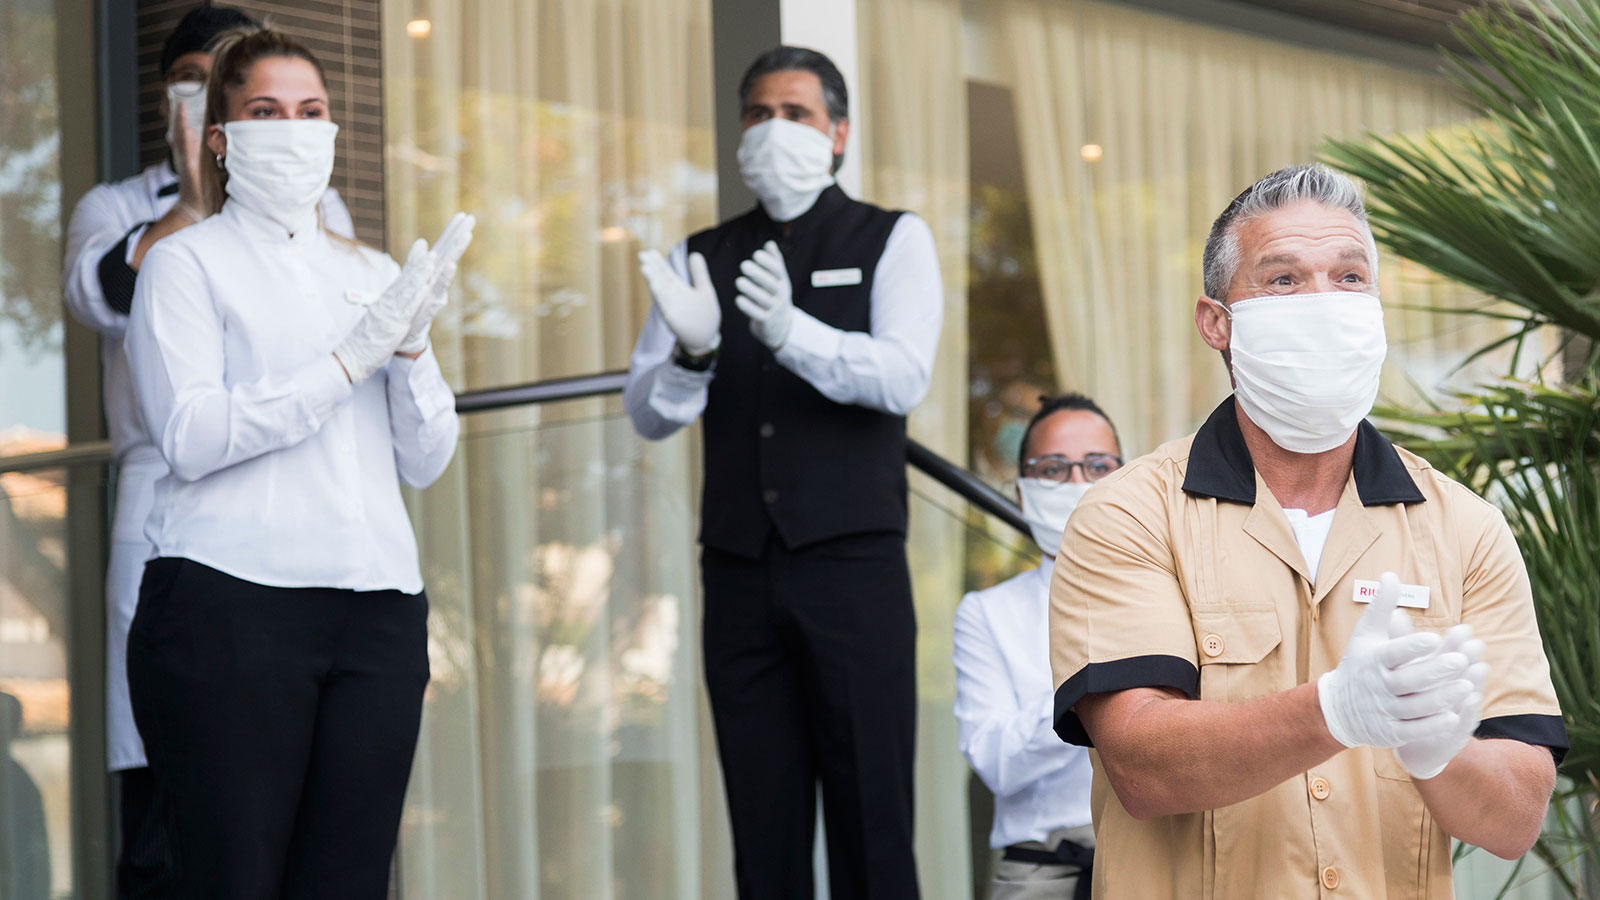 Workers of the RIU Hotel in Mallorca welcome guests from Germany on June 15.